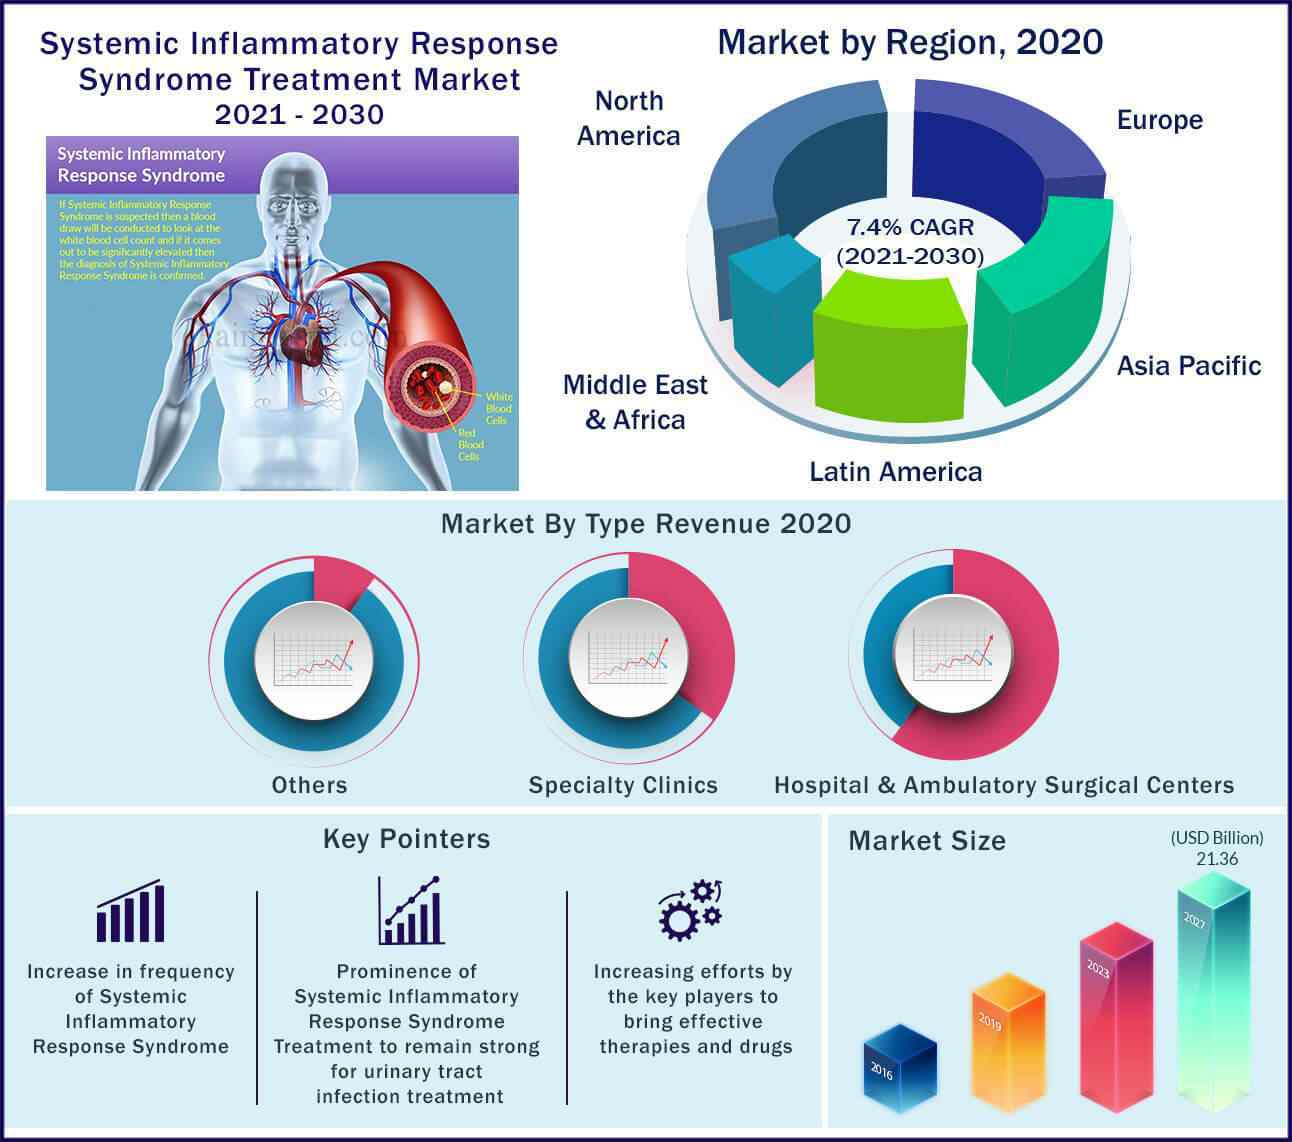 Global Systemic Inflammatory Response Syndrome Treatment Market 2021-2030